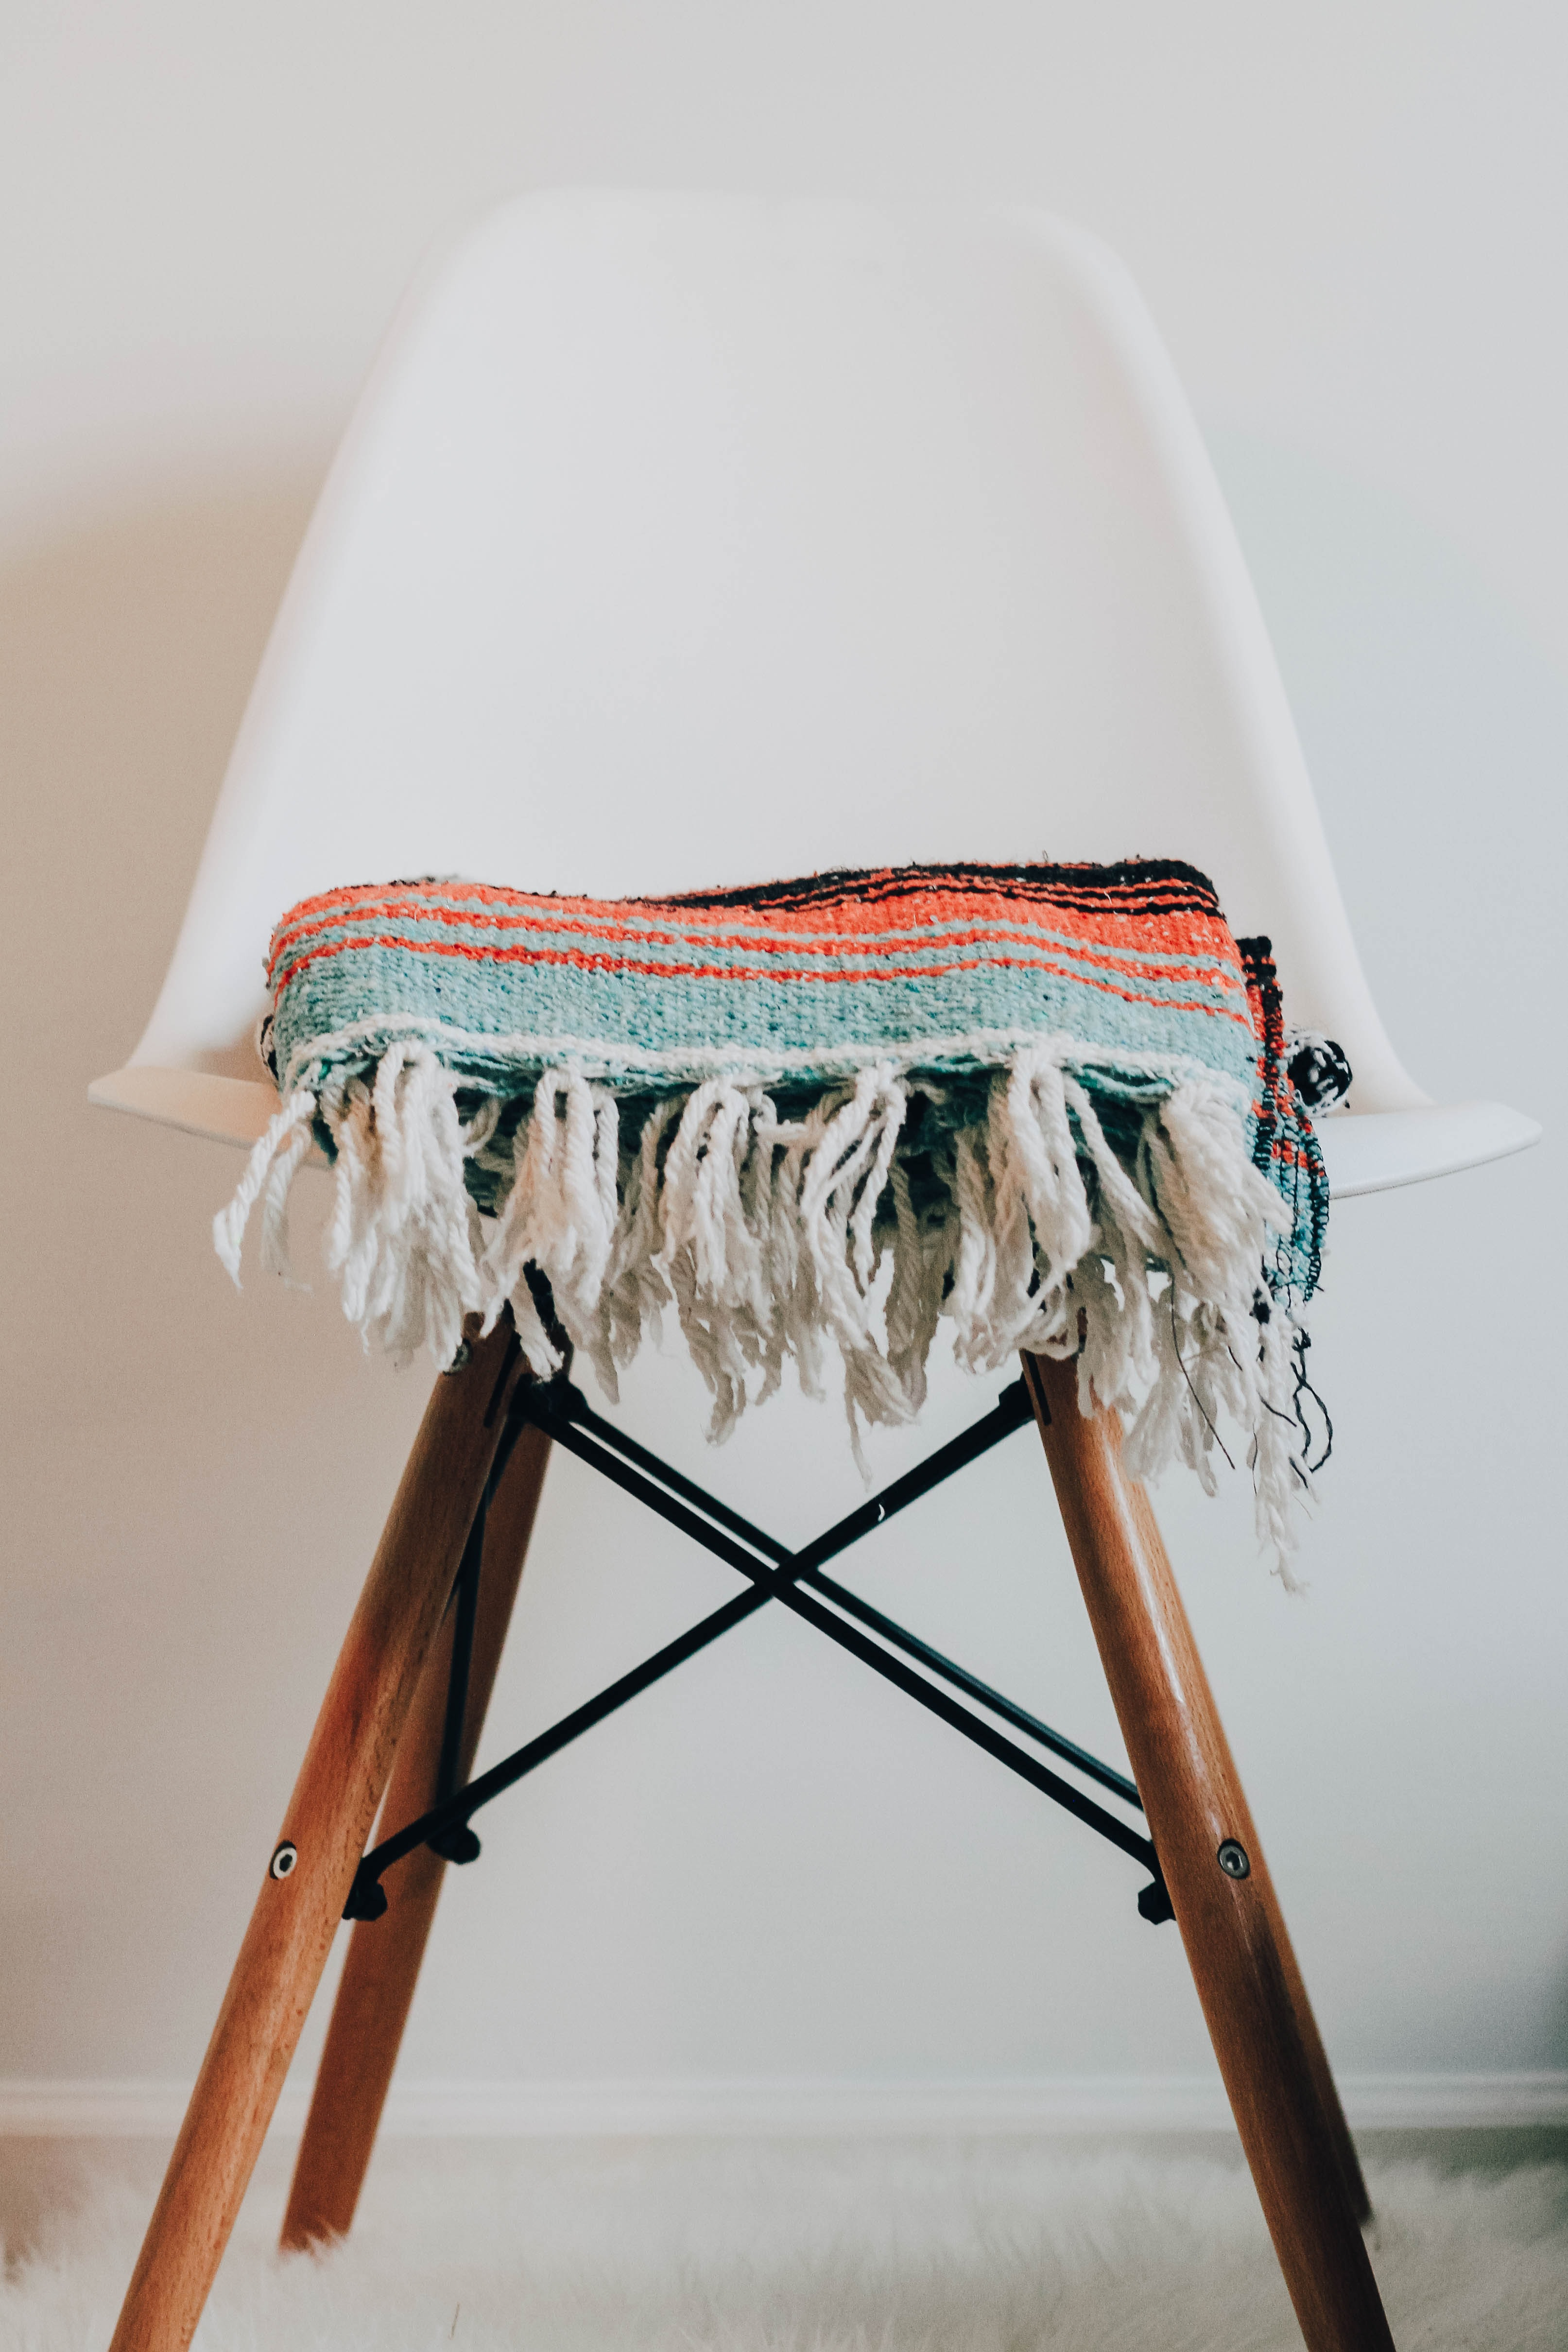 teal knit scarf on chair